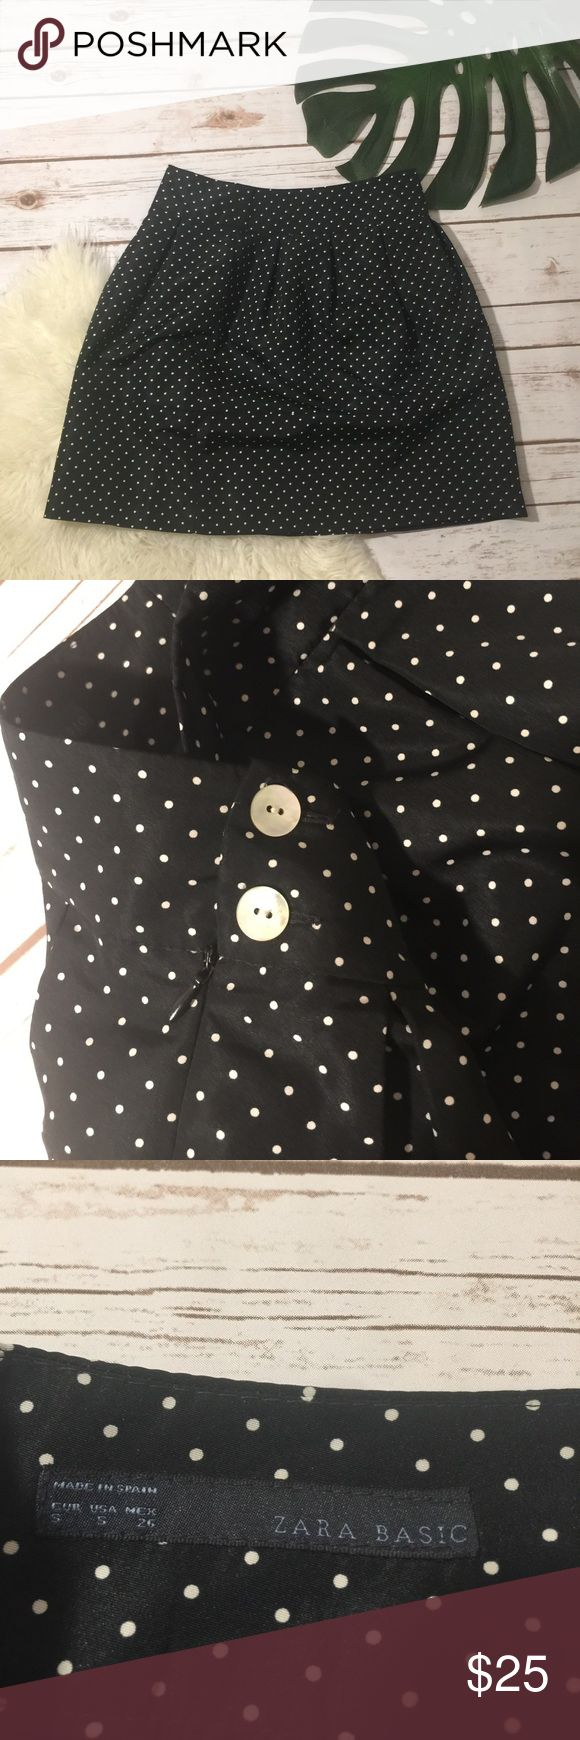 Polka dot Zara mini skirt Black and white polka dotted skirt in very good condition measurements shown in pictures Zara Skirts Mini